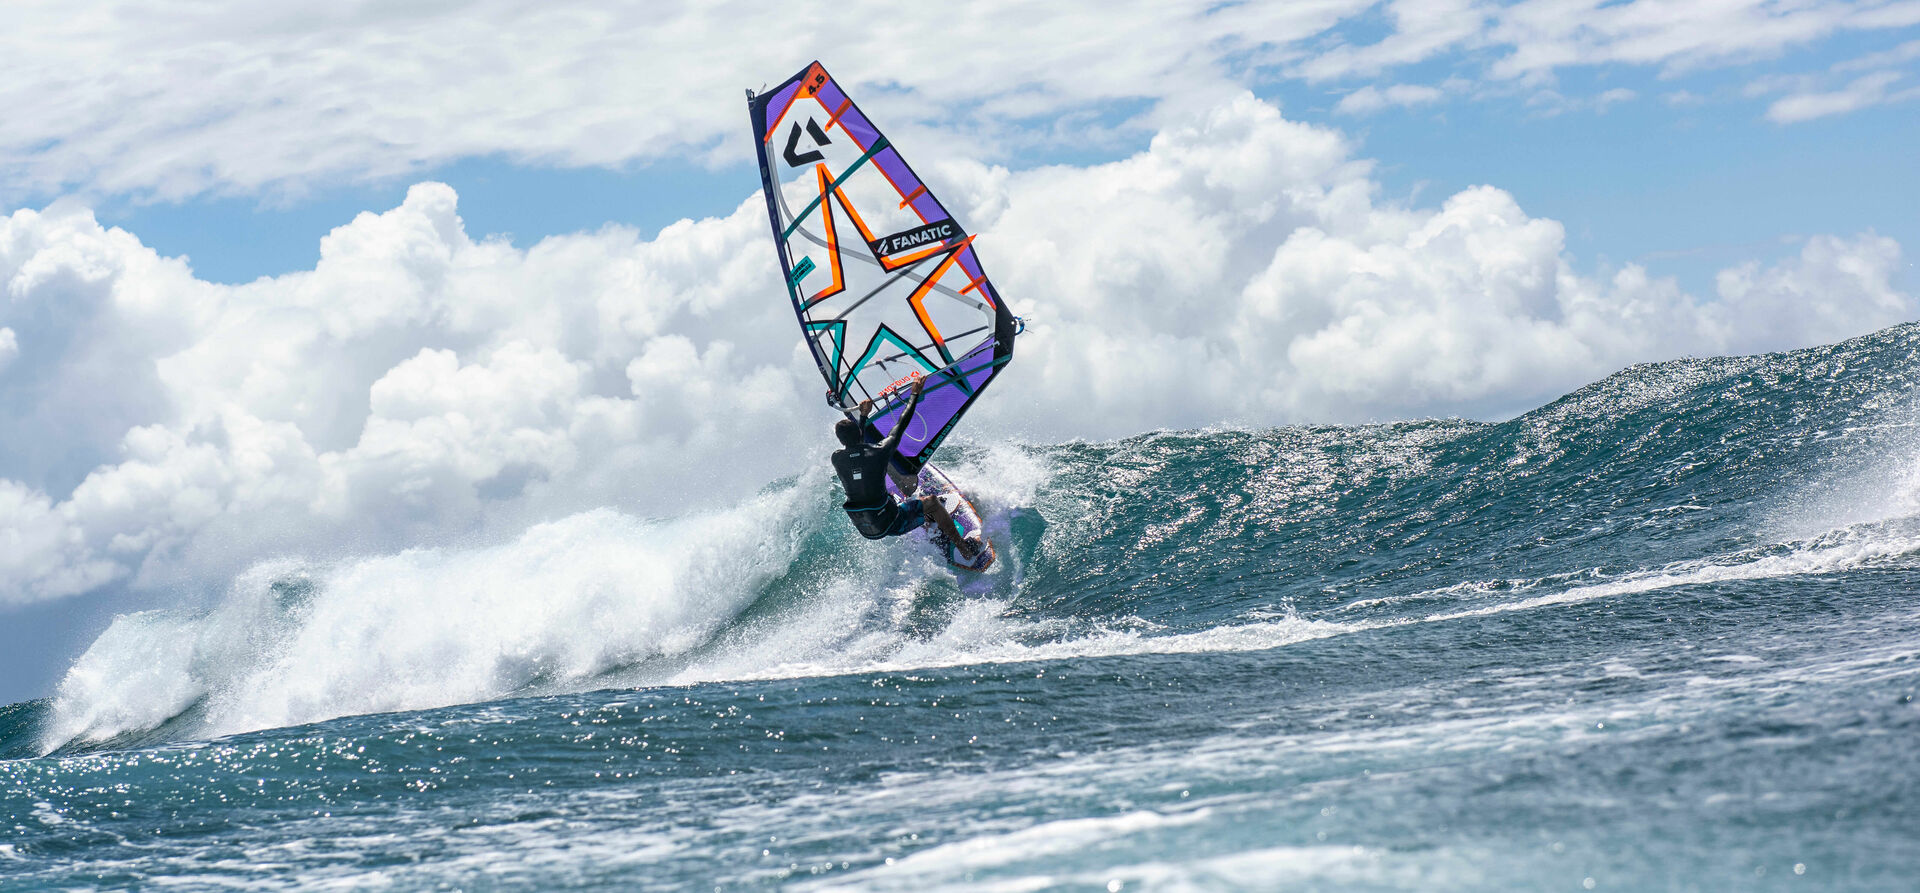 Duotone_Windsurfing_Wave_Freestyle_Sails_2021_1